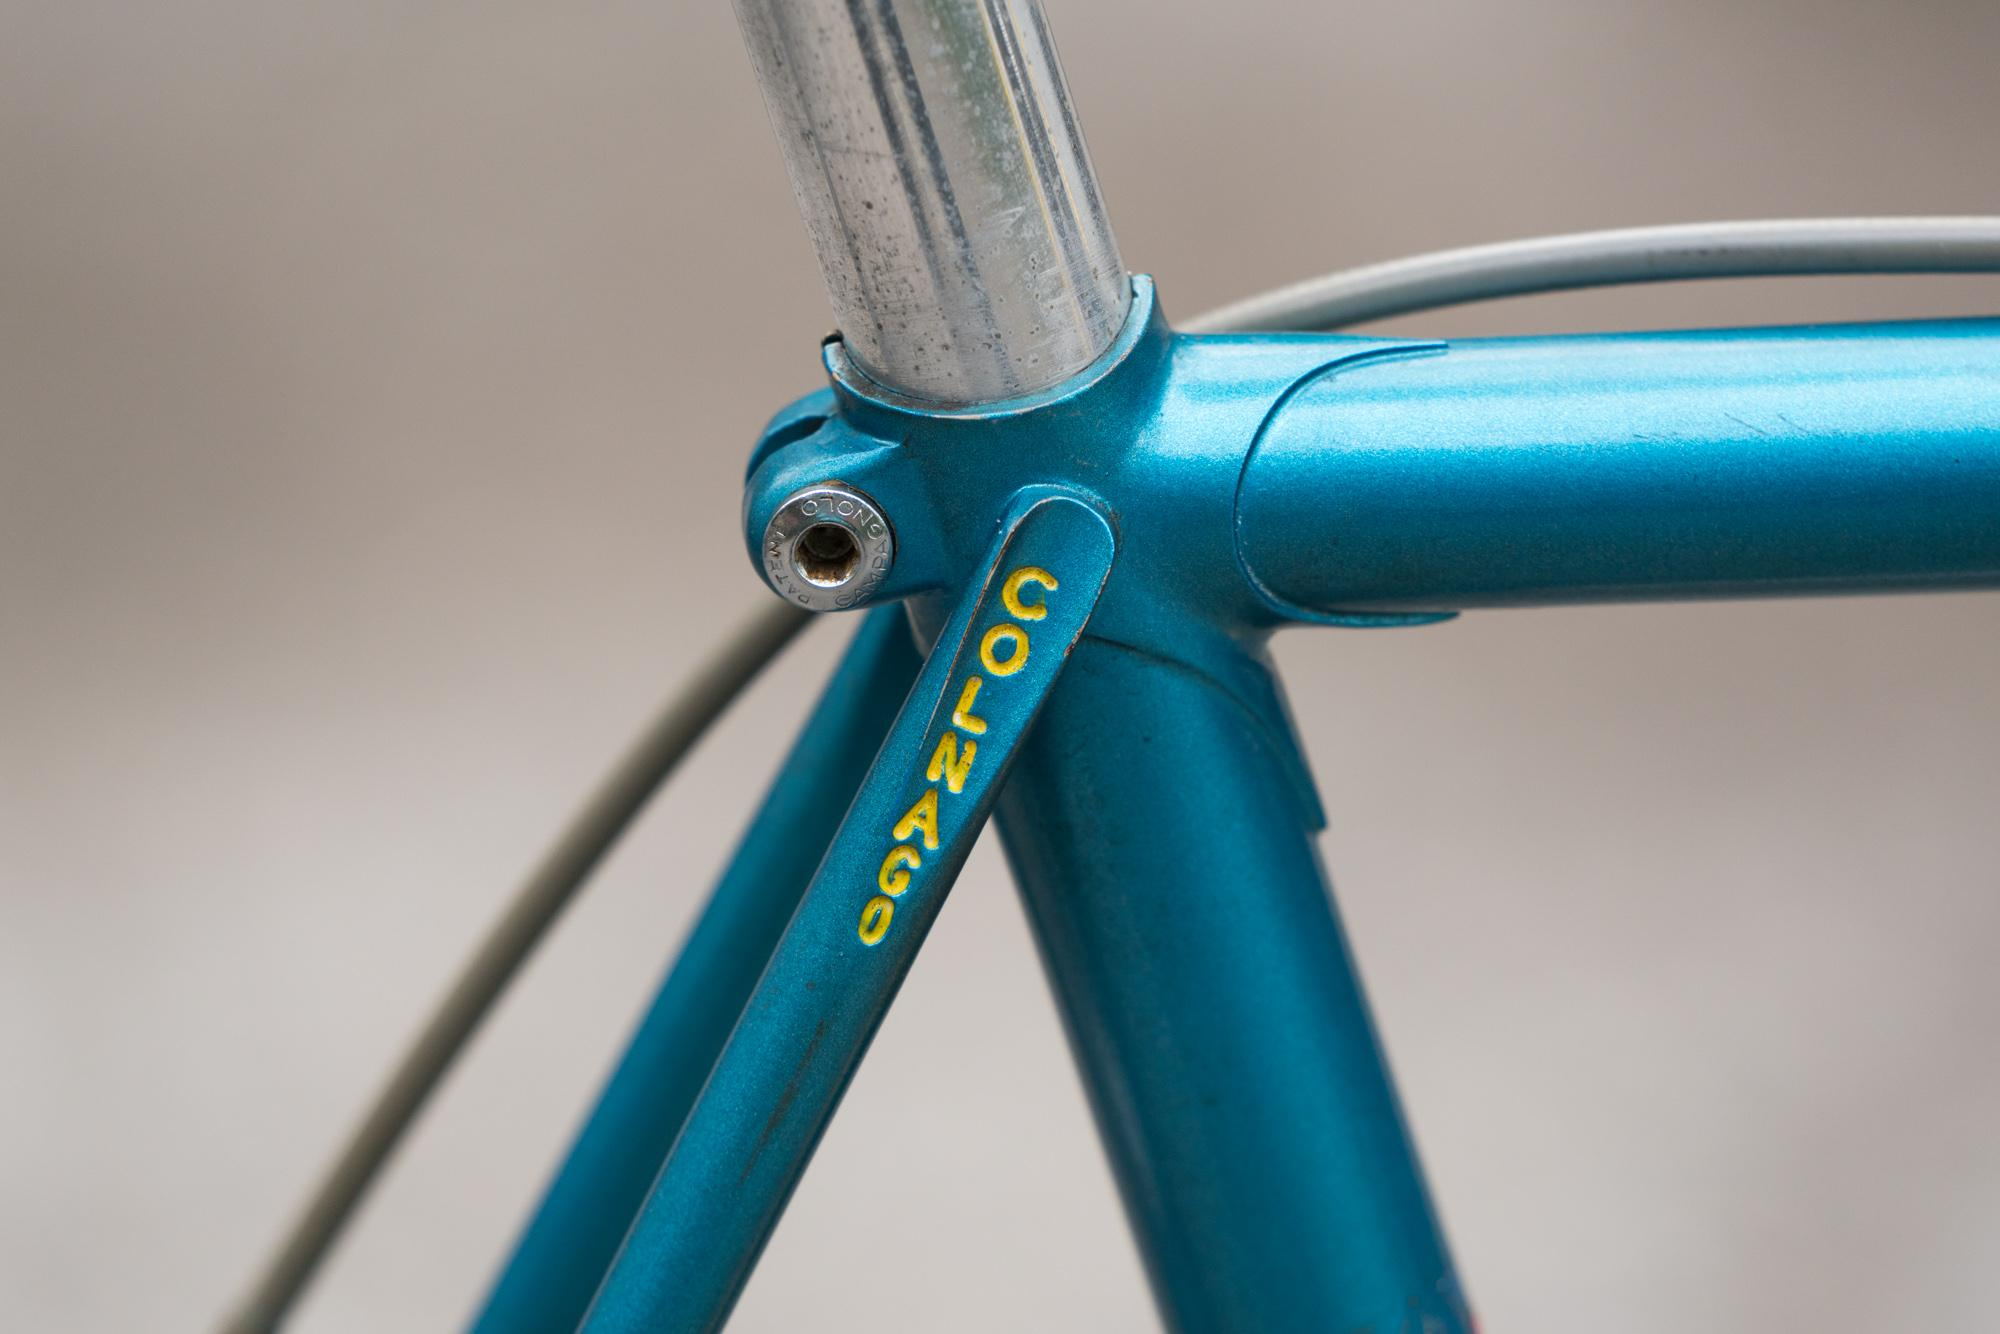 Johns Cool Colnago Coolnago (8 of 27)